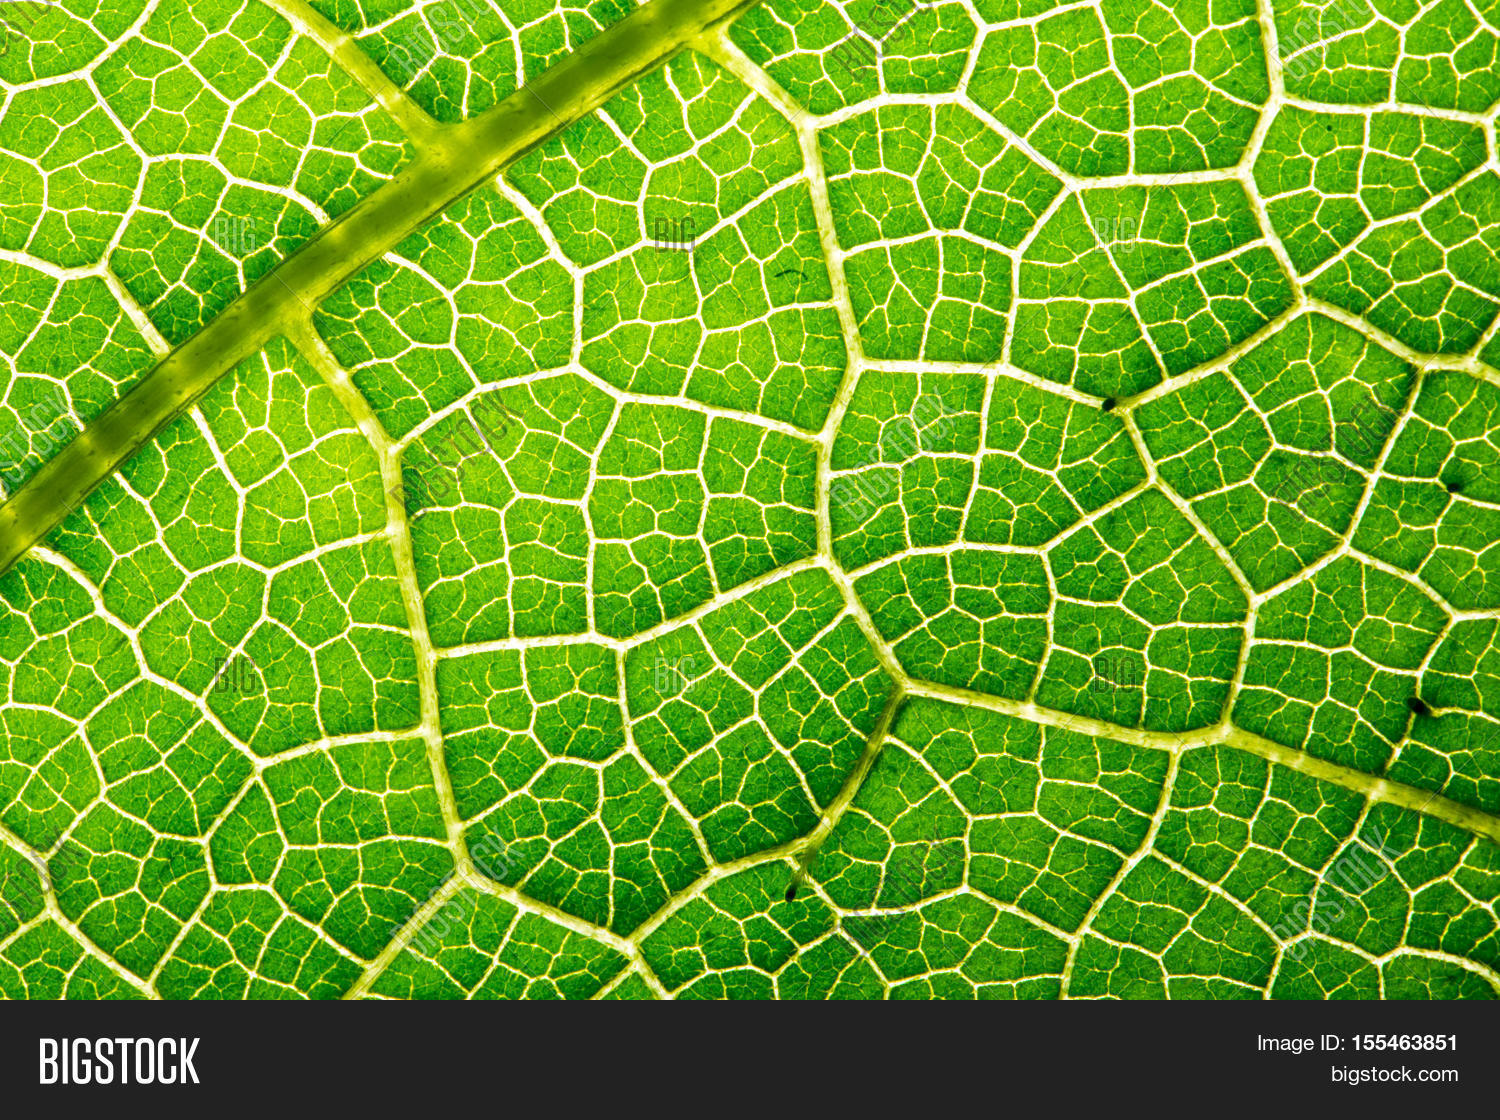 Fresh Leaf Texture Image Photo Free Trial Bigstock